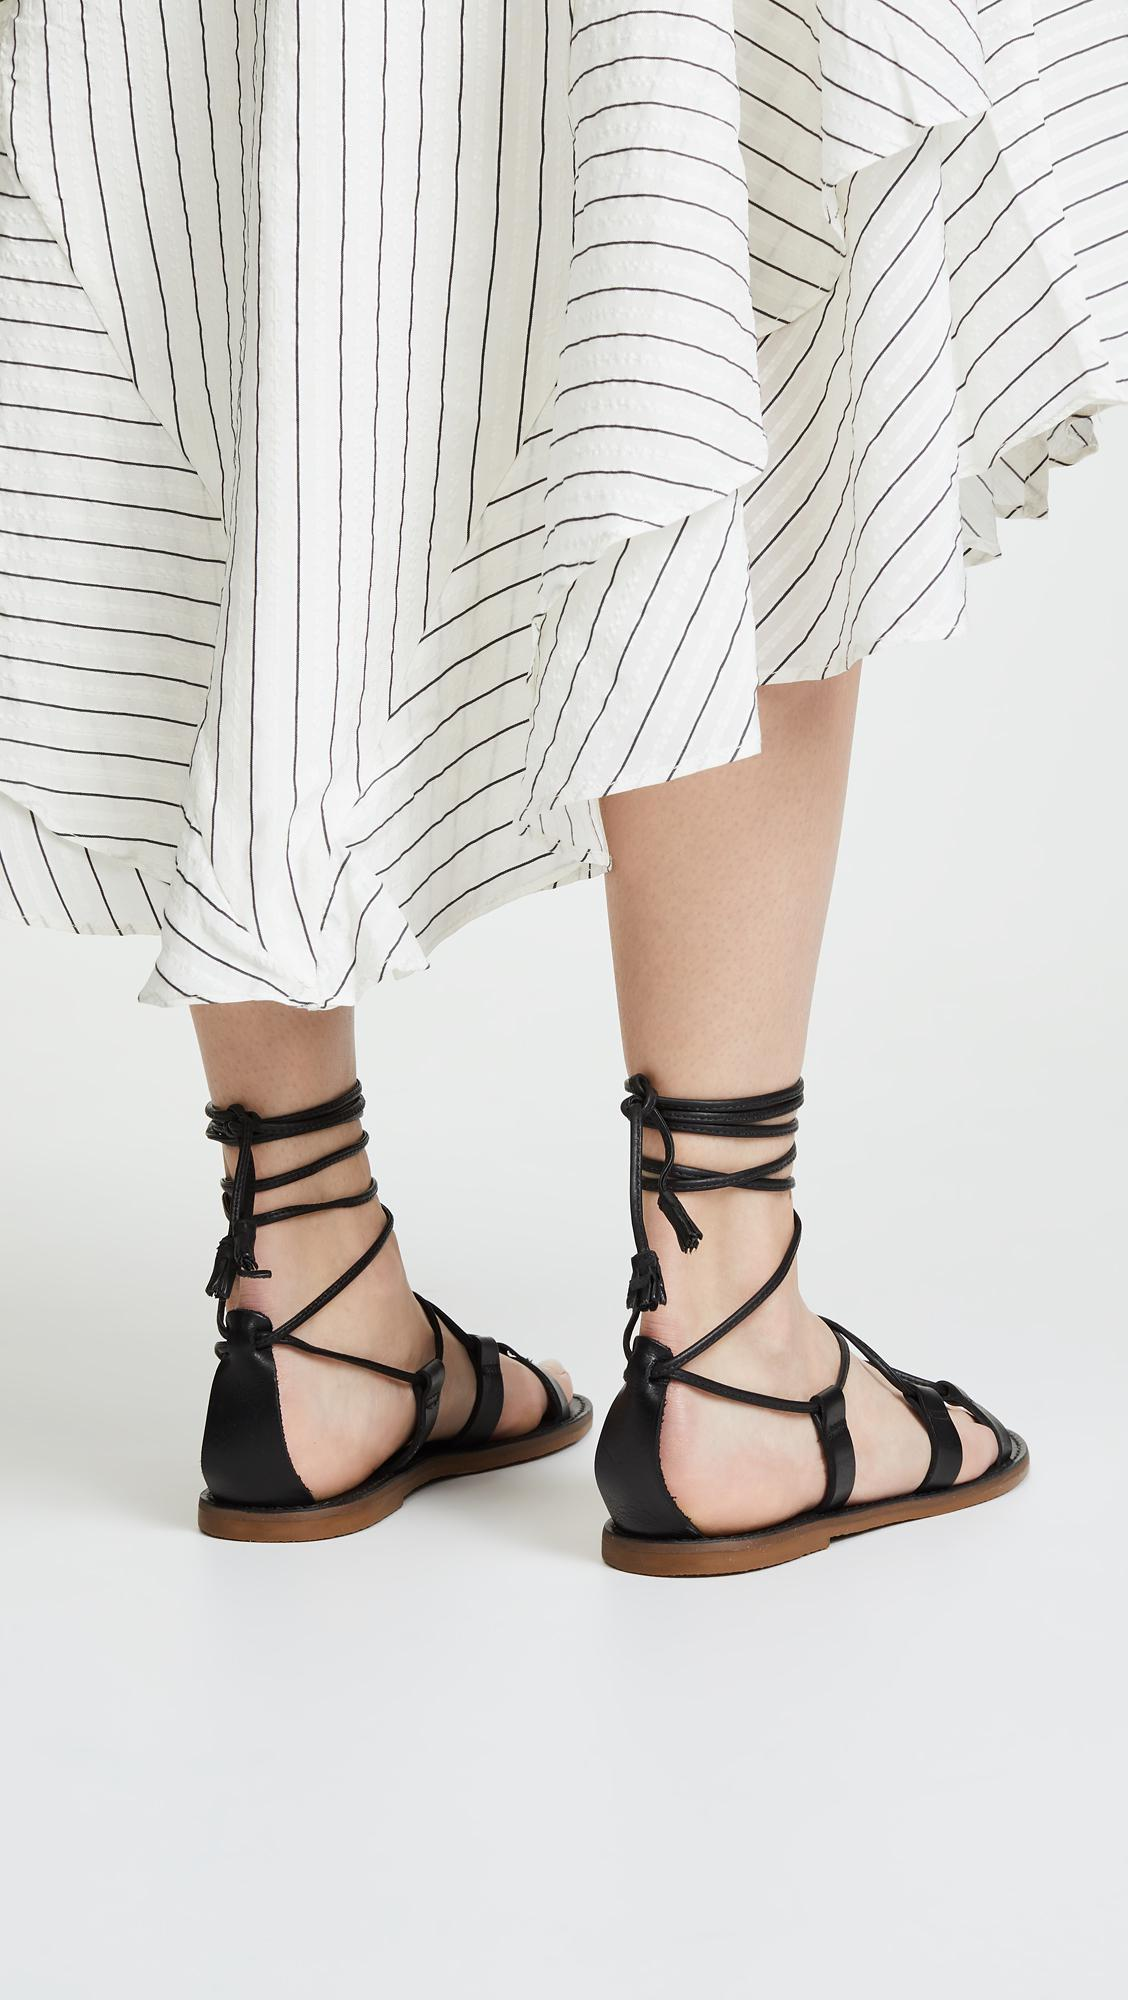 c57054b016a7 Madewell Outstock Lace Up Sandals - Lyst